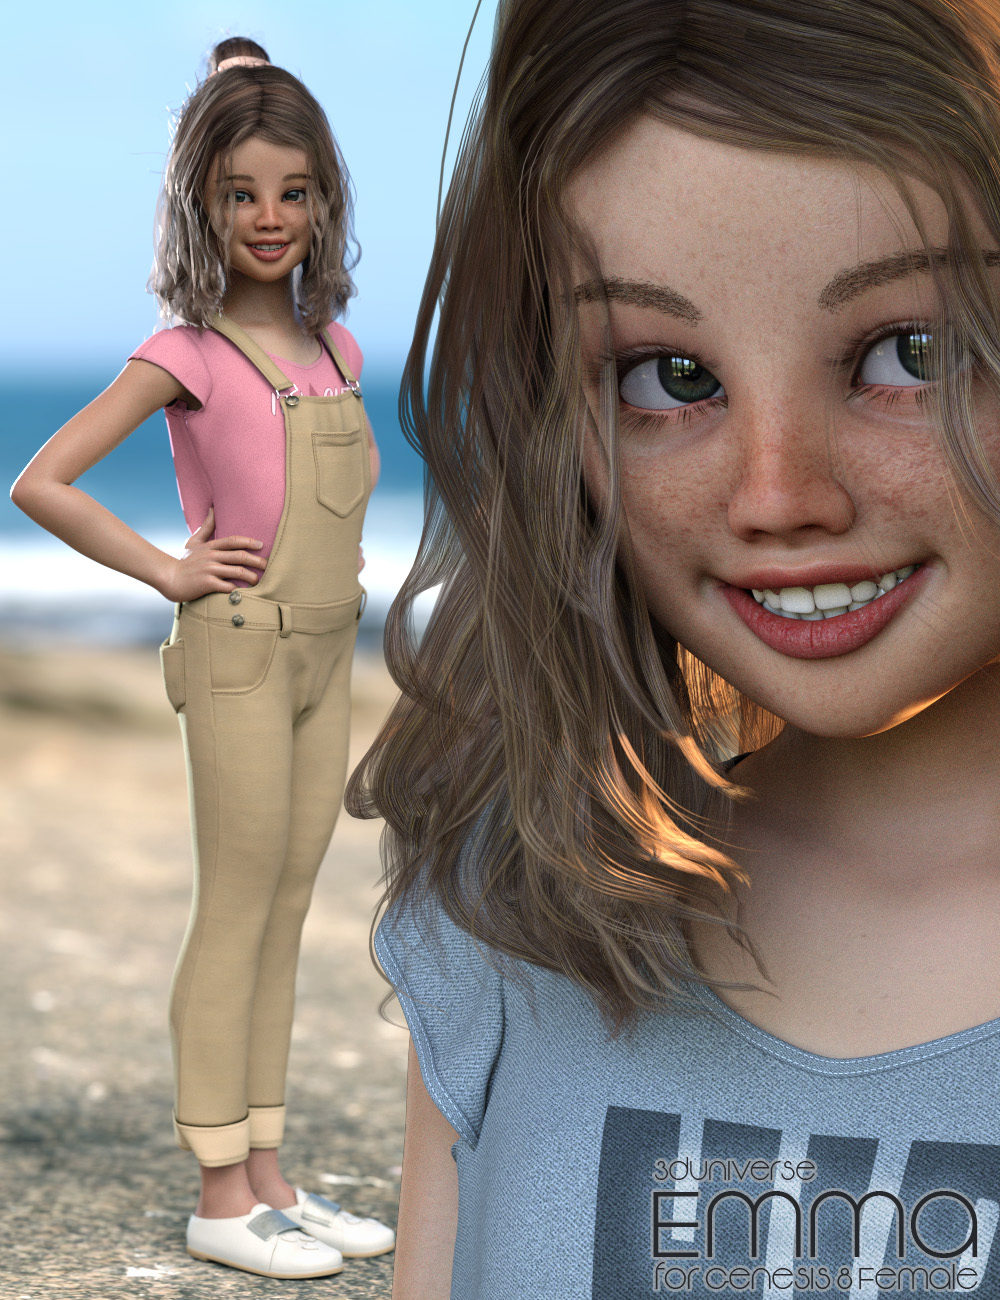 Emma Character, Hair, Clothing and Accessories for Genesis 8 Female(s) by: 3D Universe, 3D Models by Daz 3D